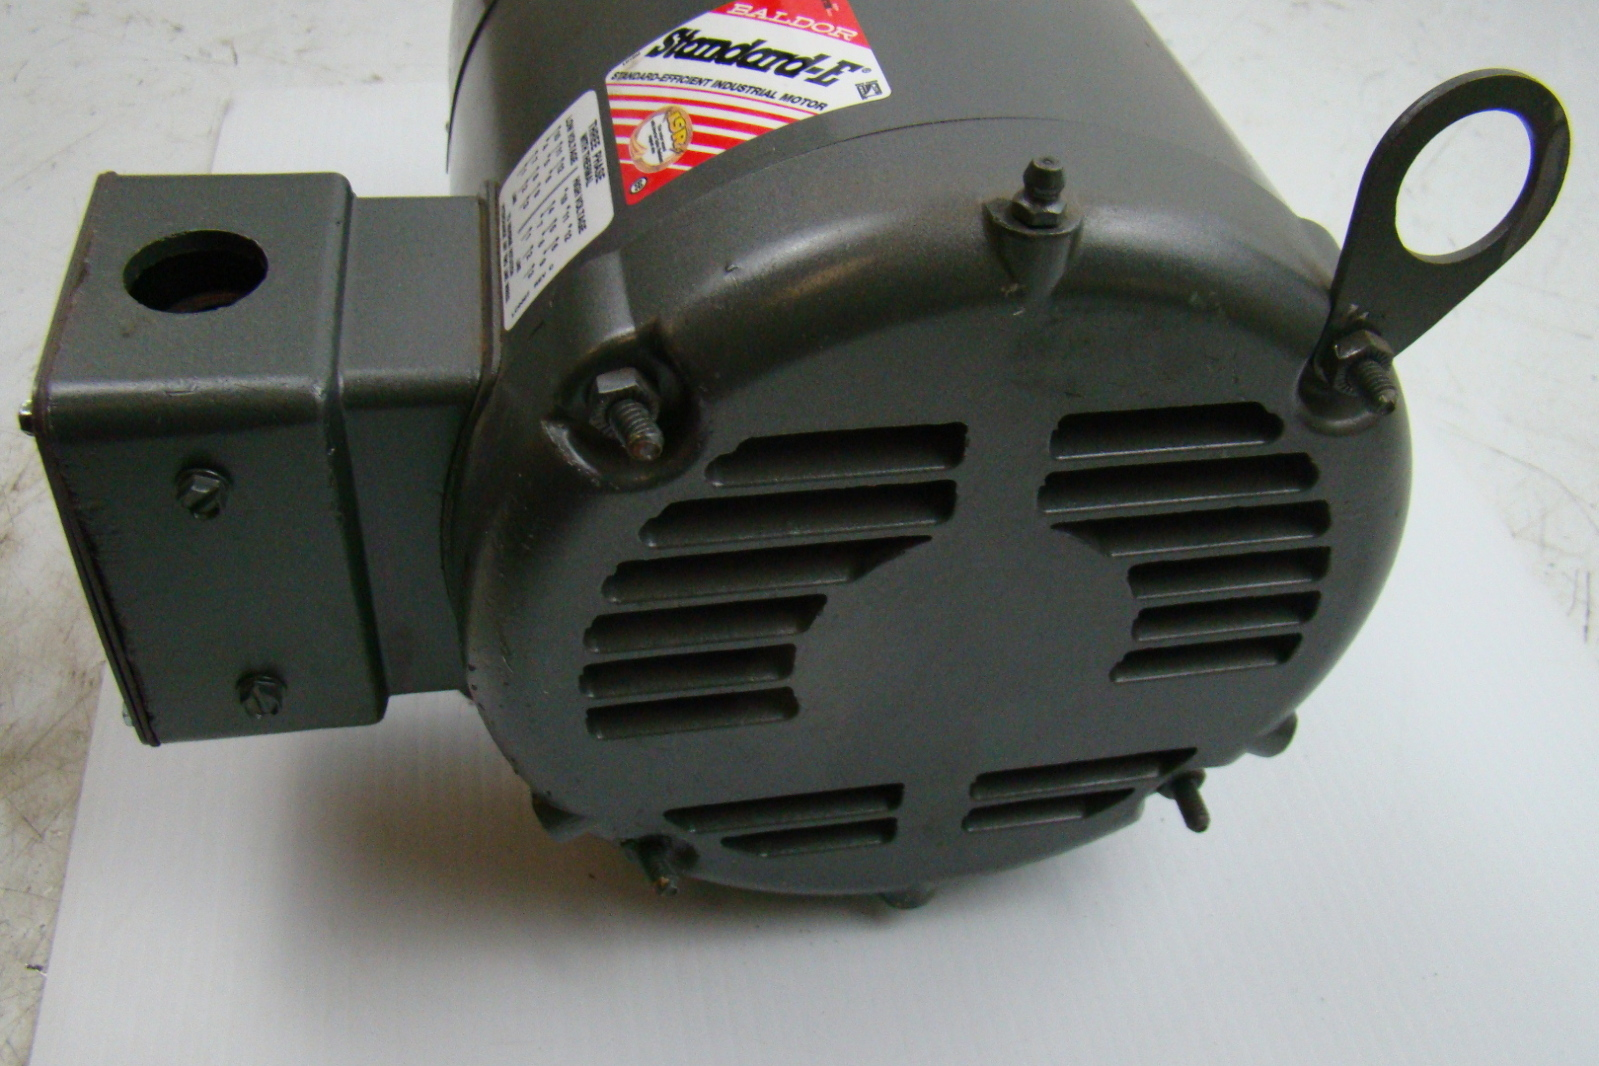 Baldor standard e 5hp electric motor 230 460v 36j448y335h2 for Baldor industrial motor parts